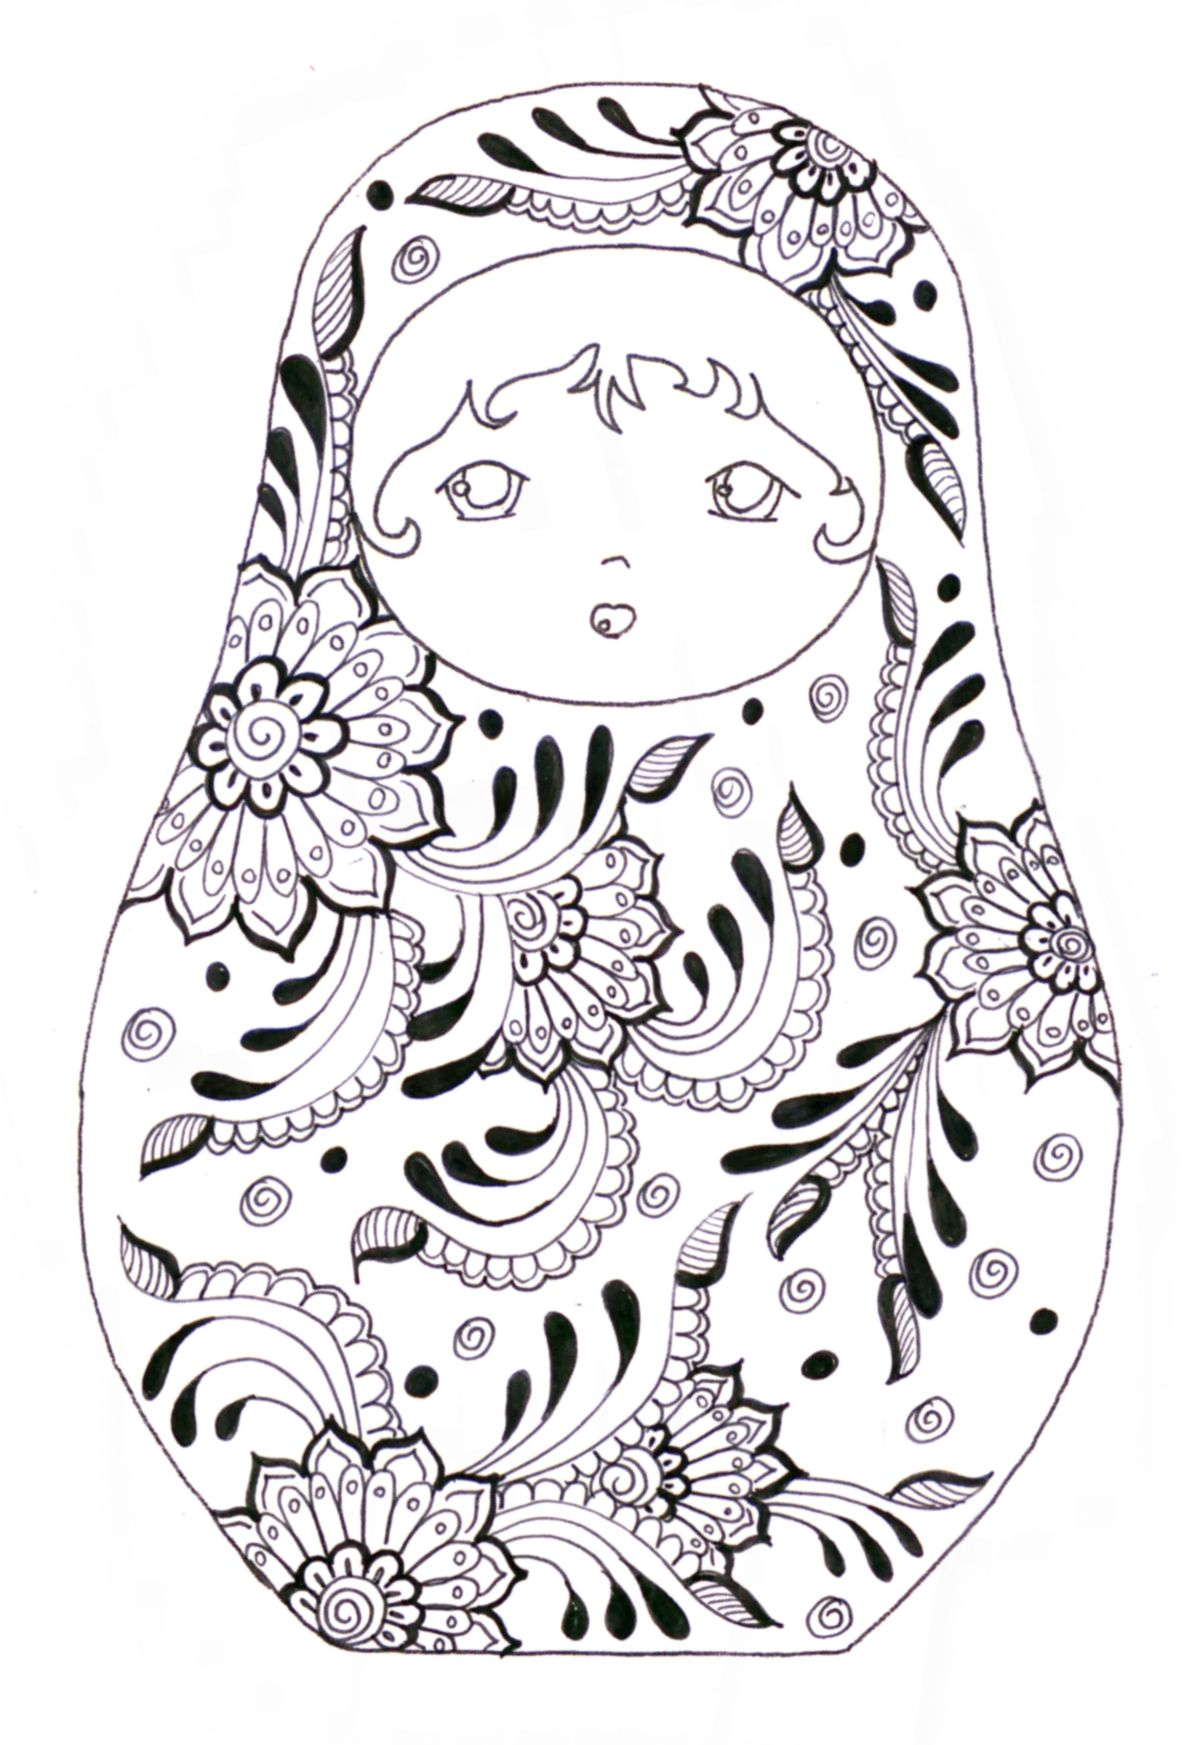 Matryoshka - coloriage | Matrioskas | Pinterest | Pintar, Colorear y ...